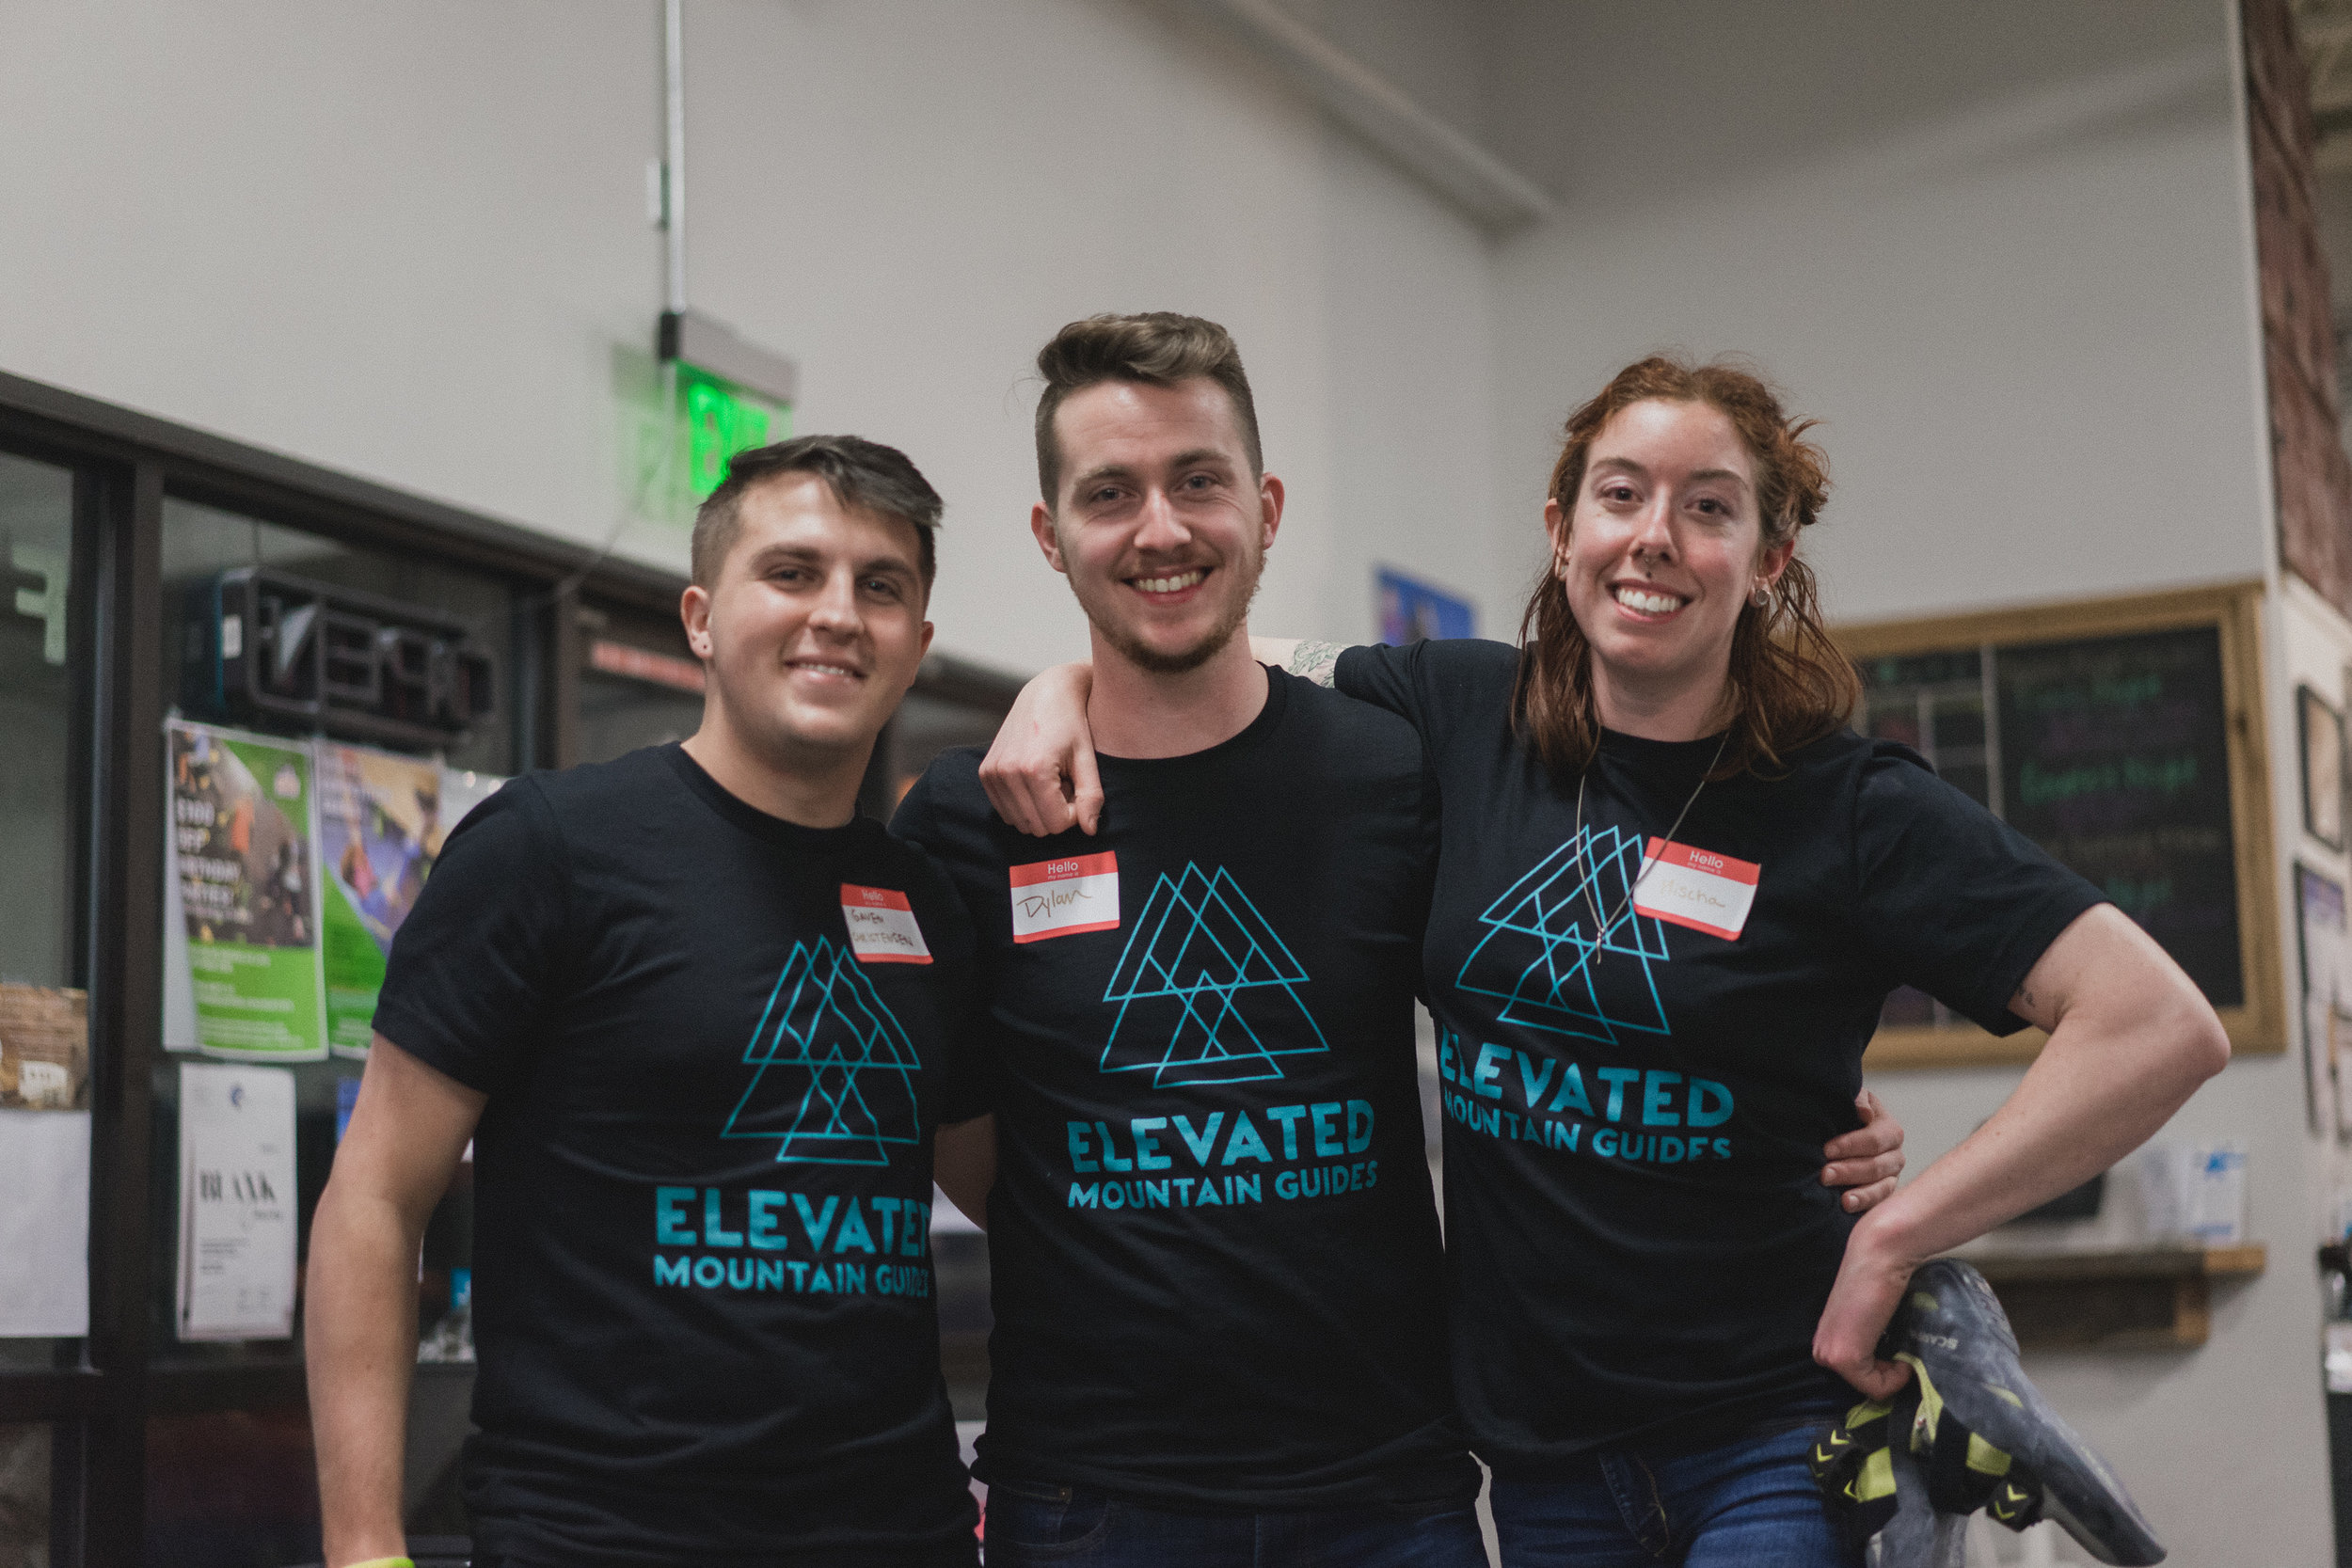 Elevated Mountain Guides logo T's